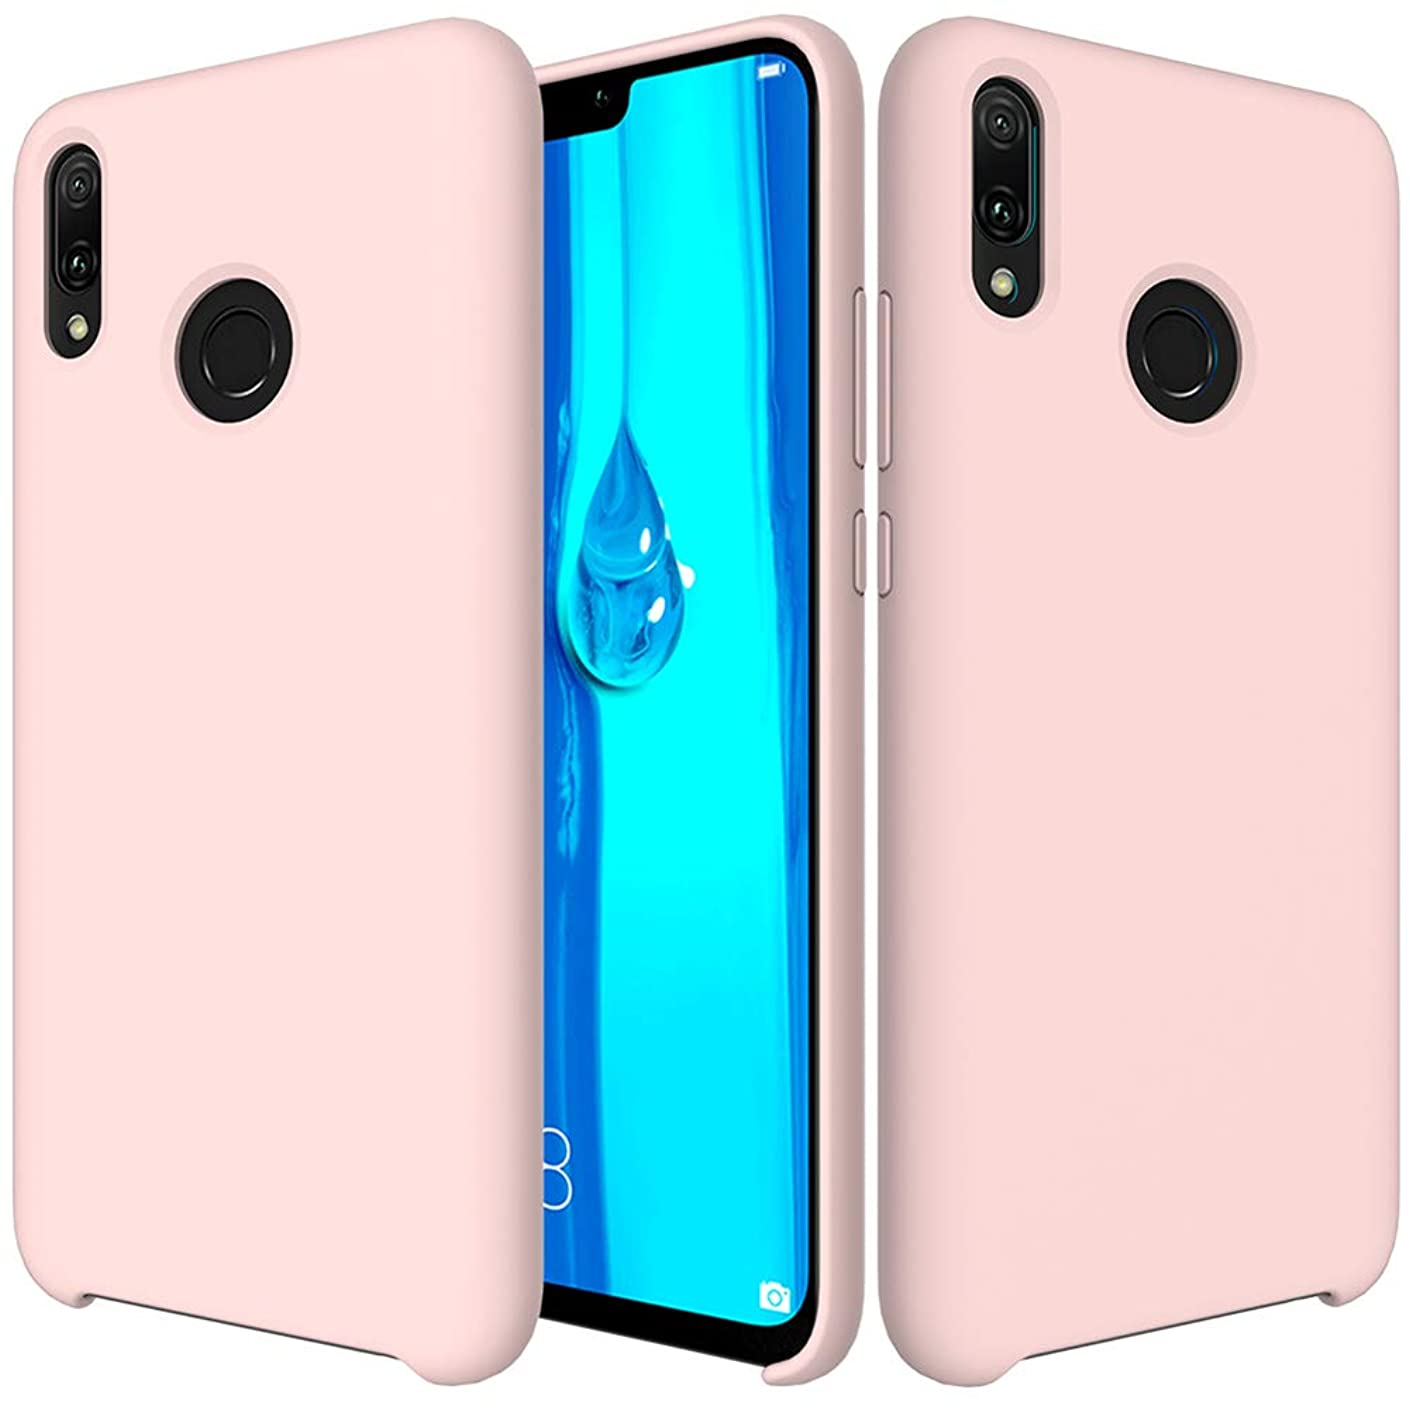 Huawei Y9(2019) Case,DAYJOY Candy Color Liquid Silicone Gel Rubber Shockproof Case with Soft Microfiber Cloth Lining Cushion for Huawei Y9(2019) (Pink)